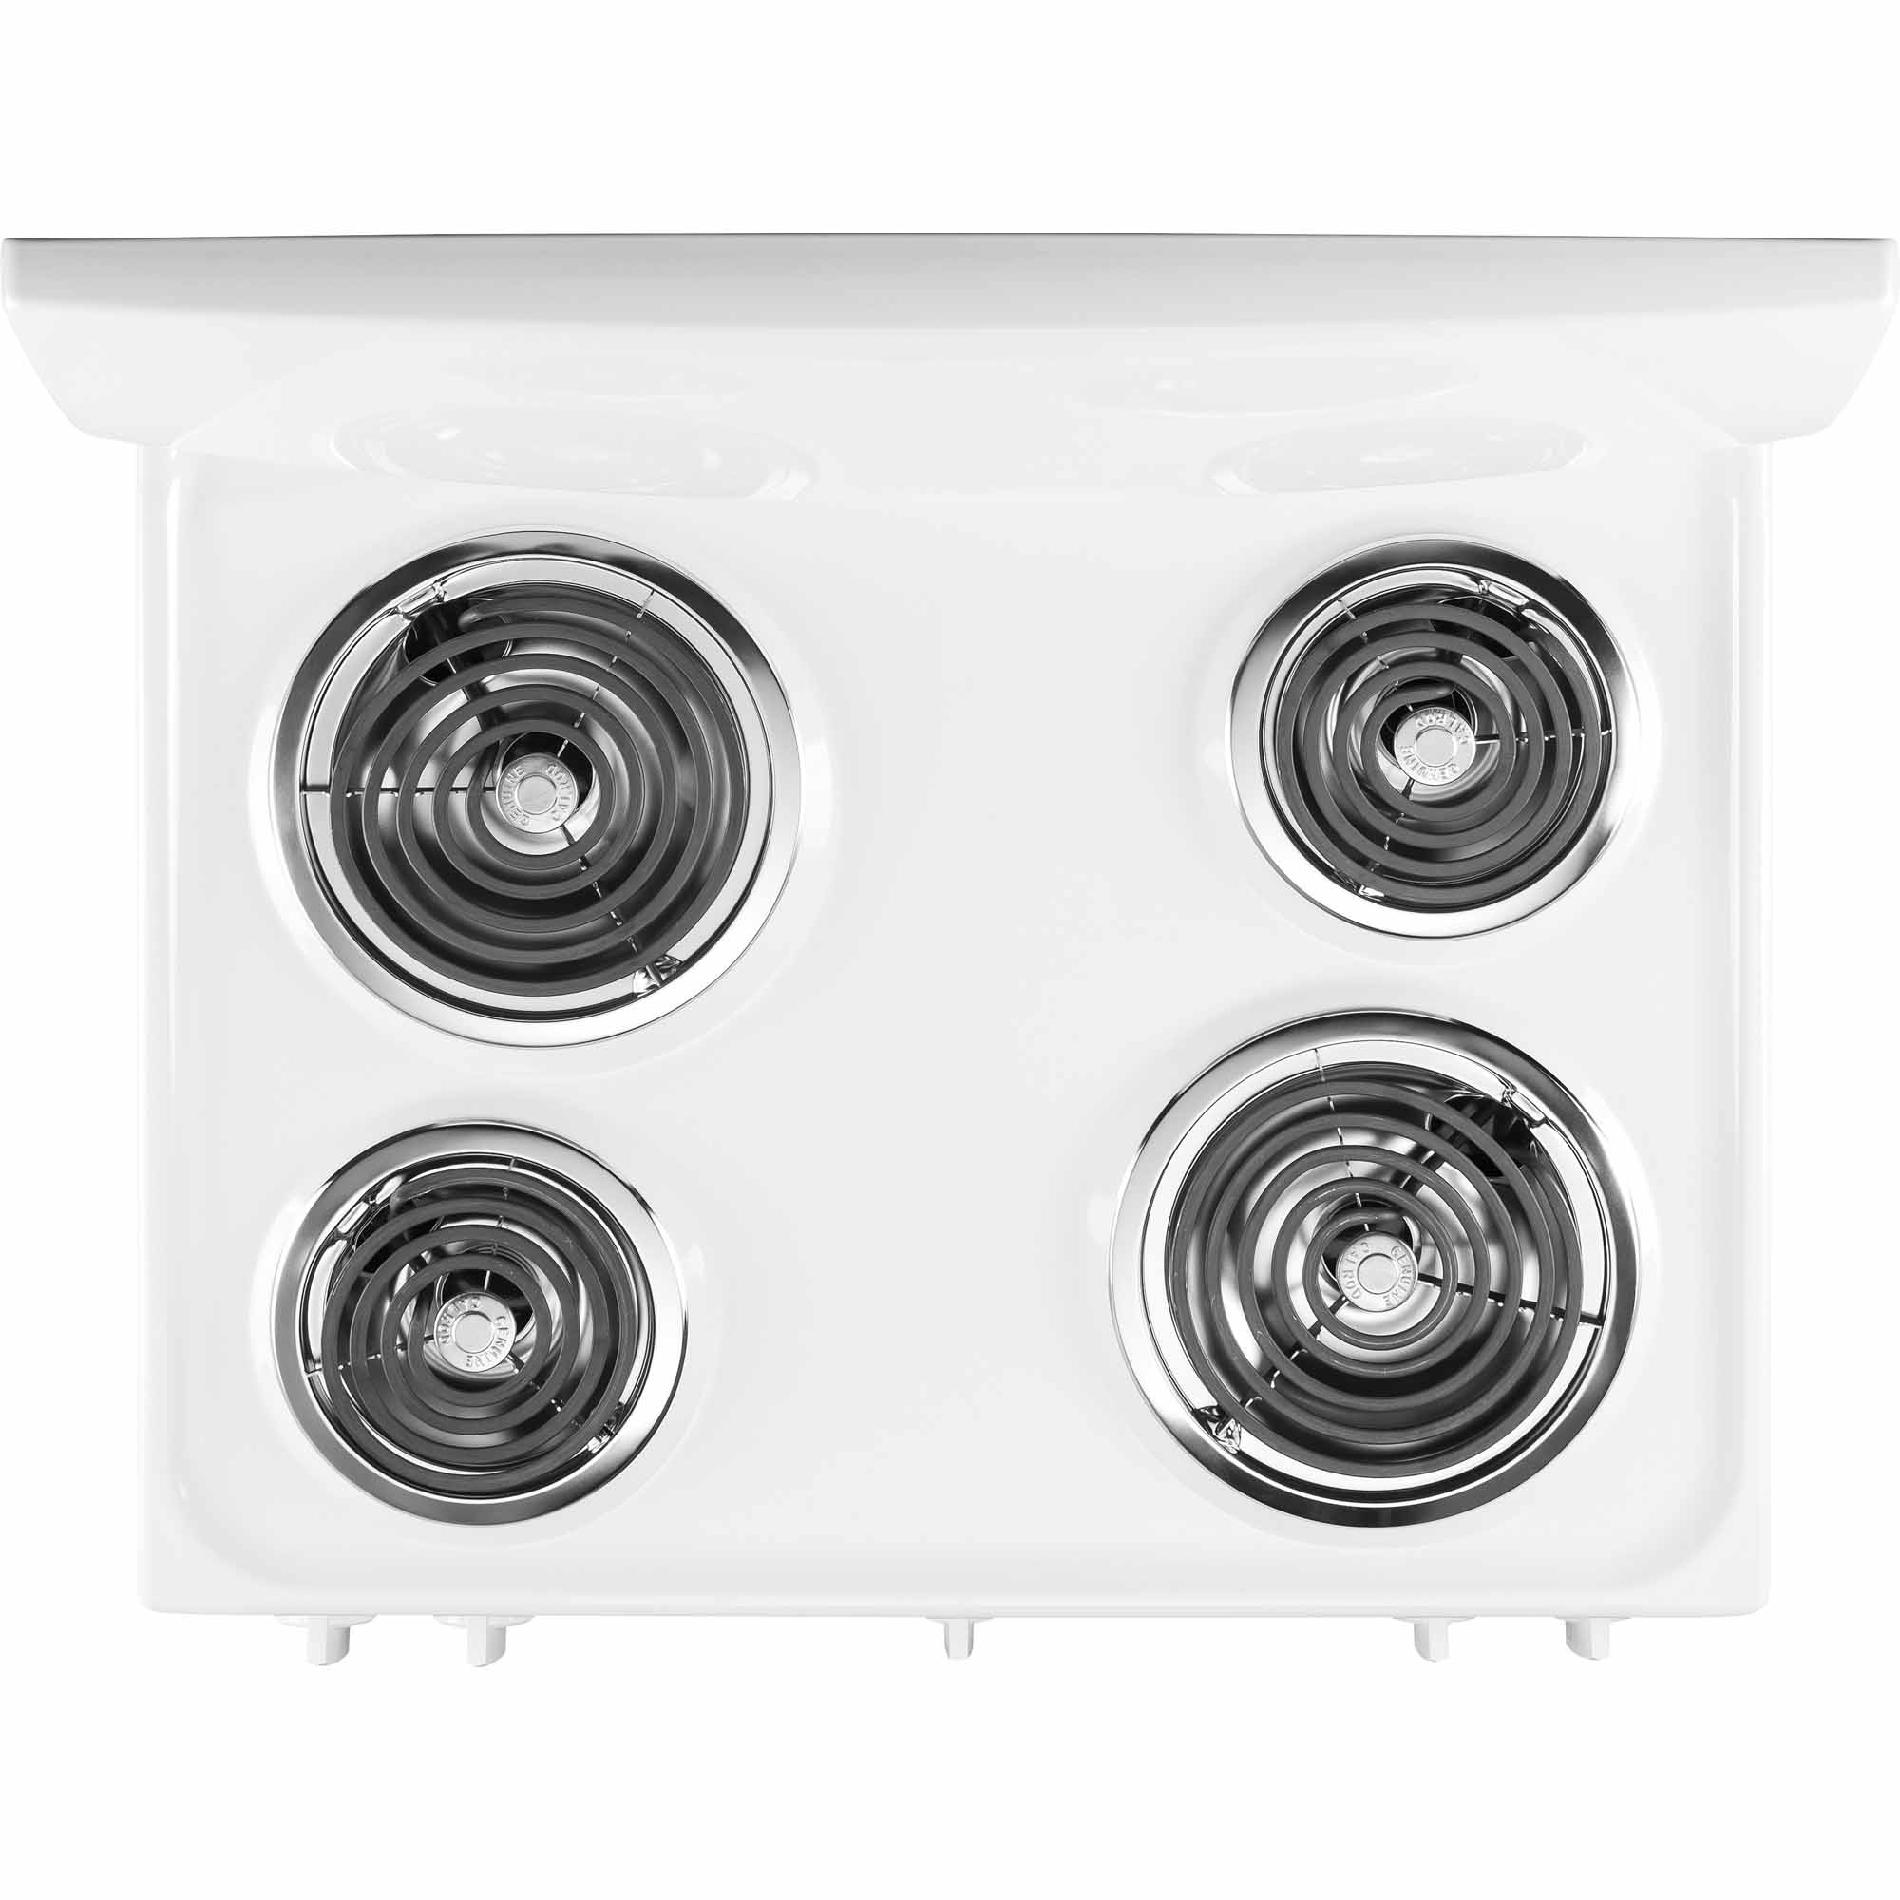 GE 5.0 cu. ft. Electric Range - White